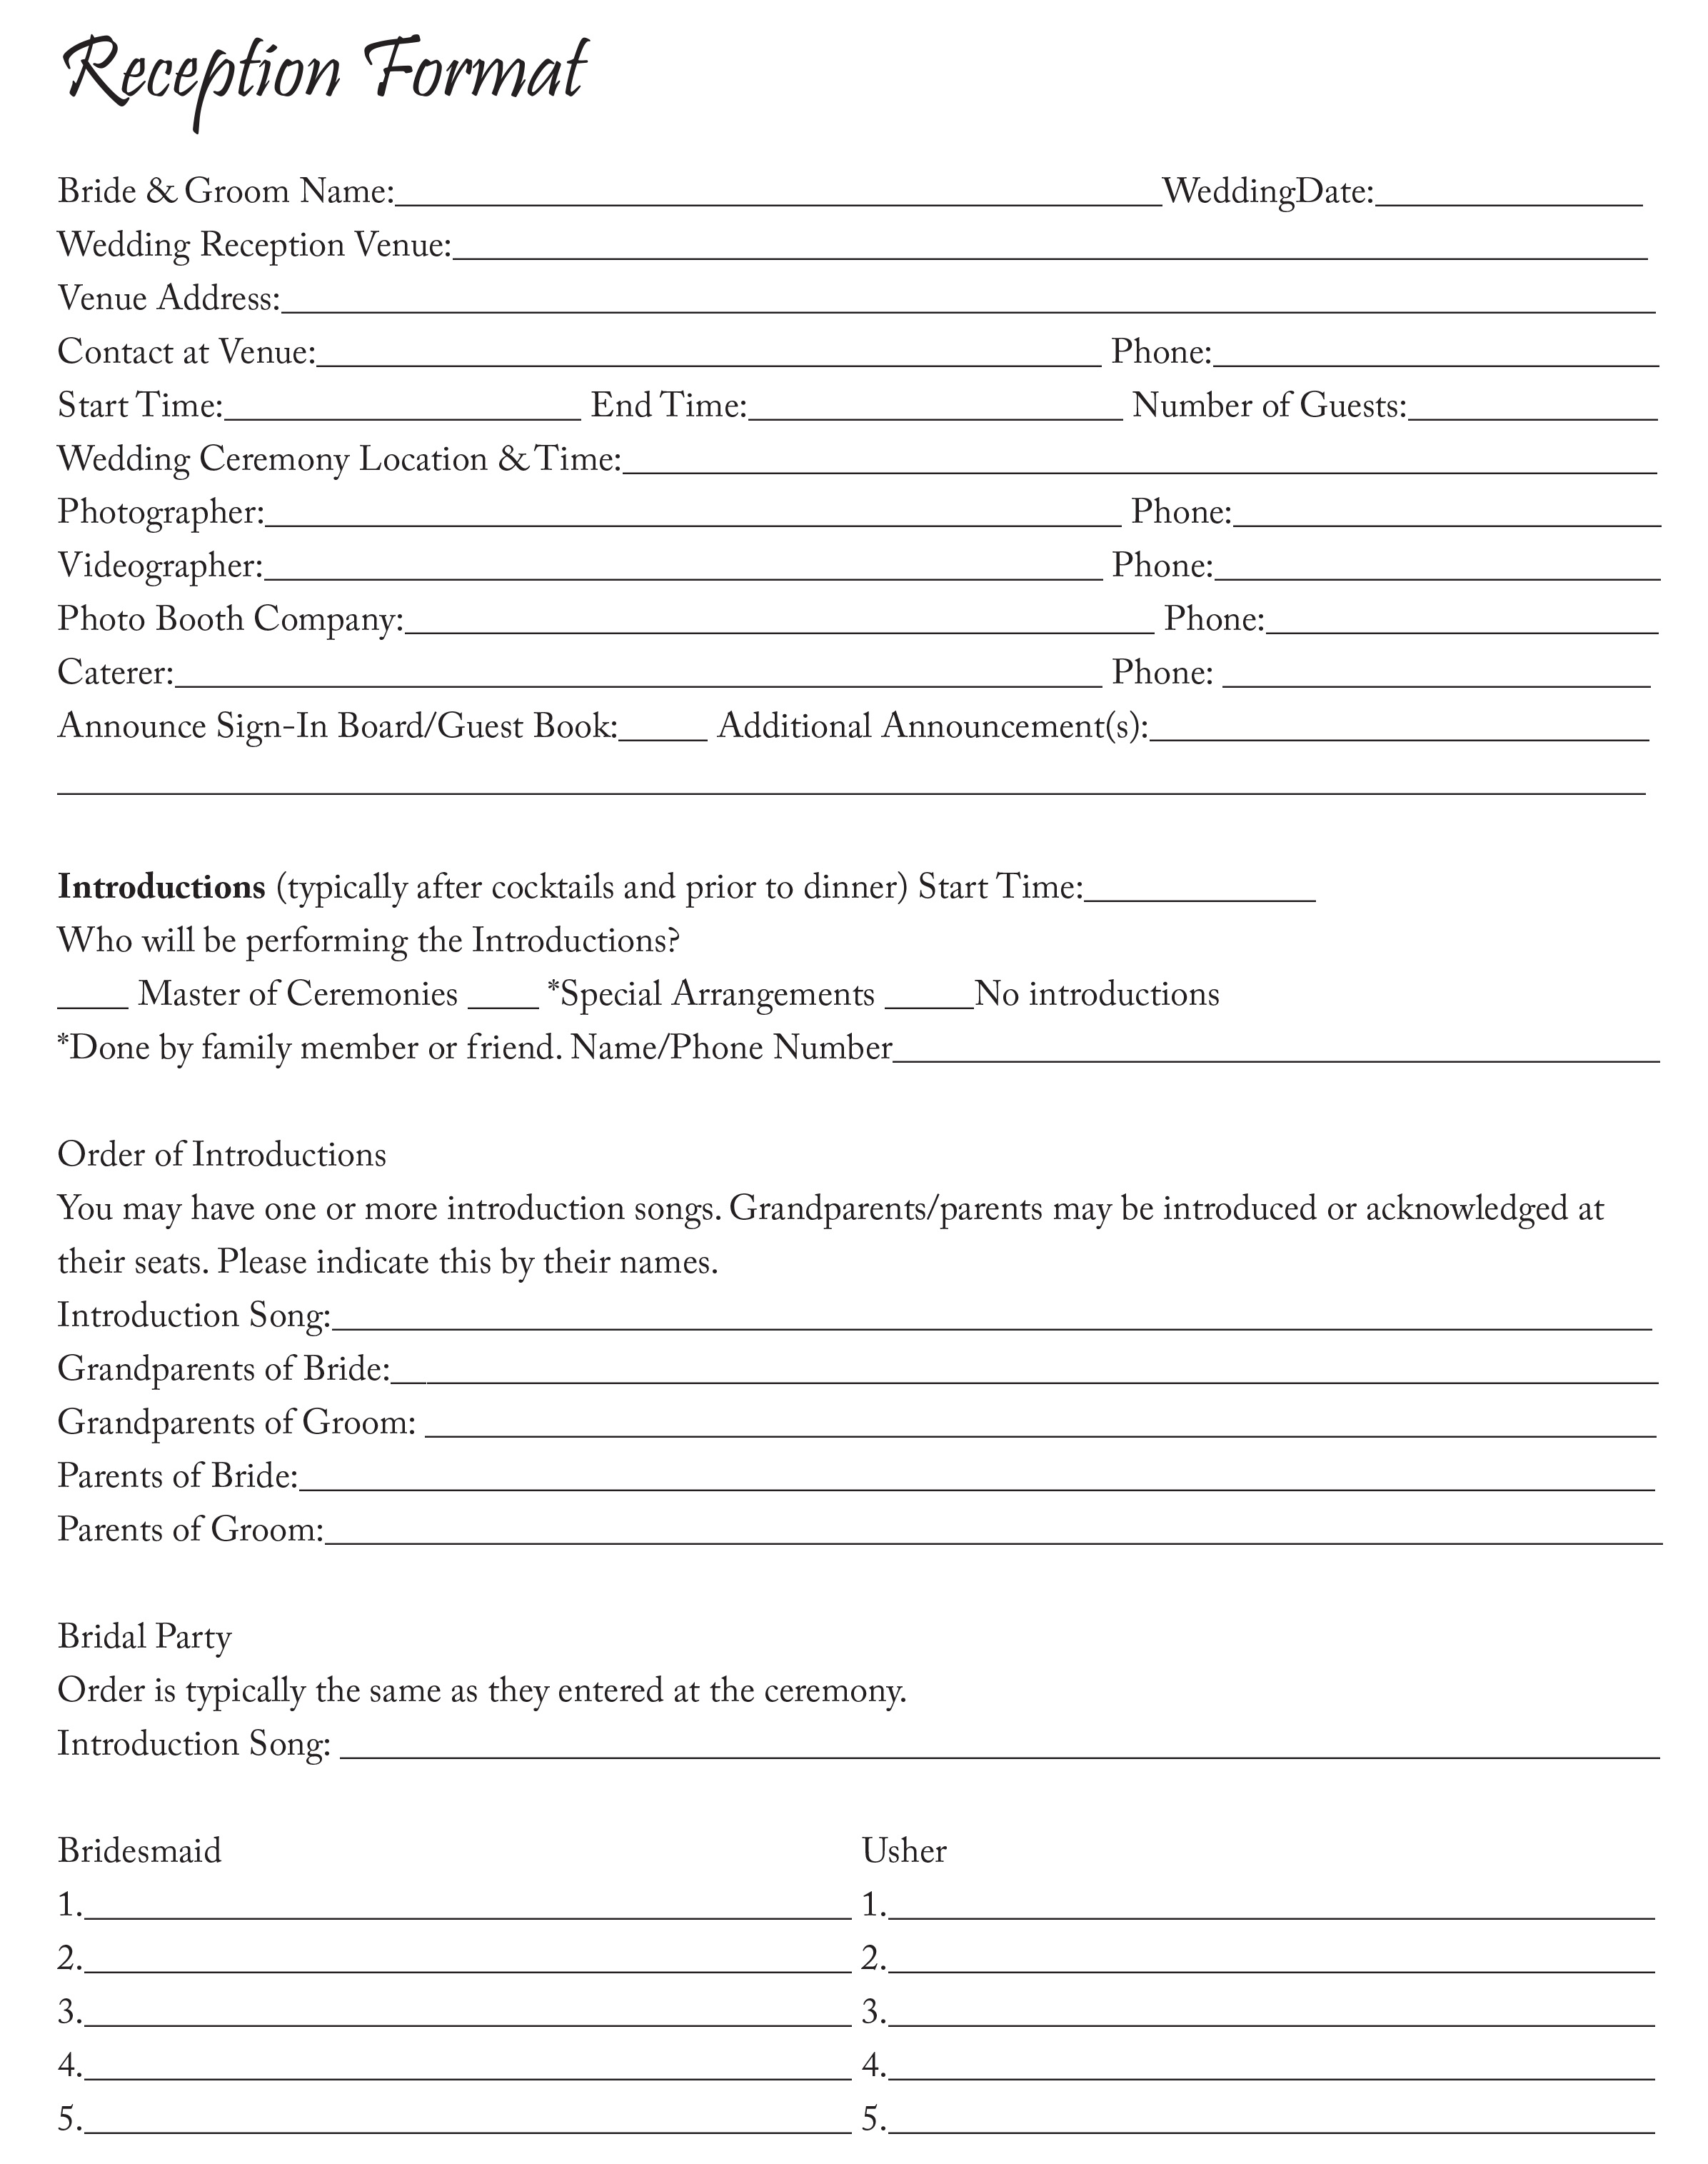 Reception Format Sheet